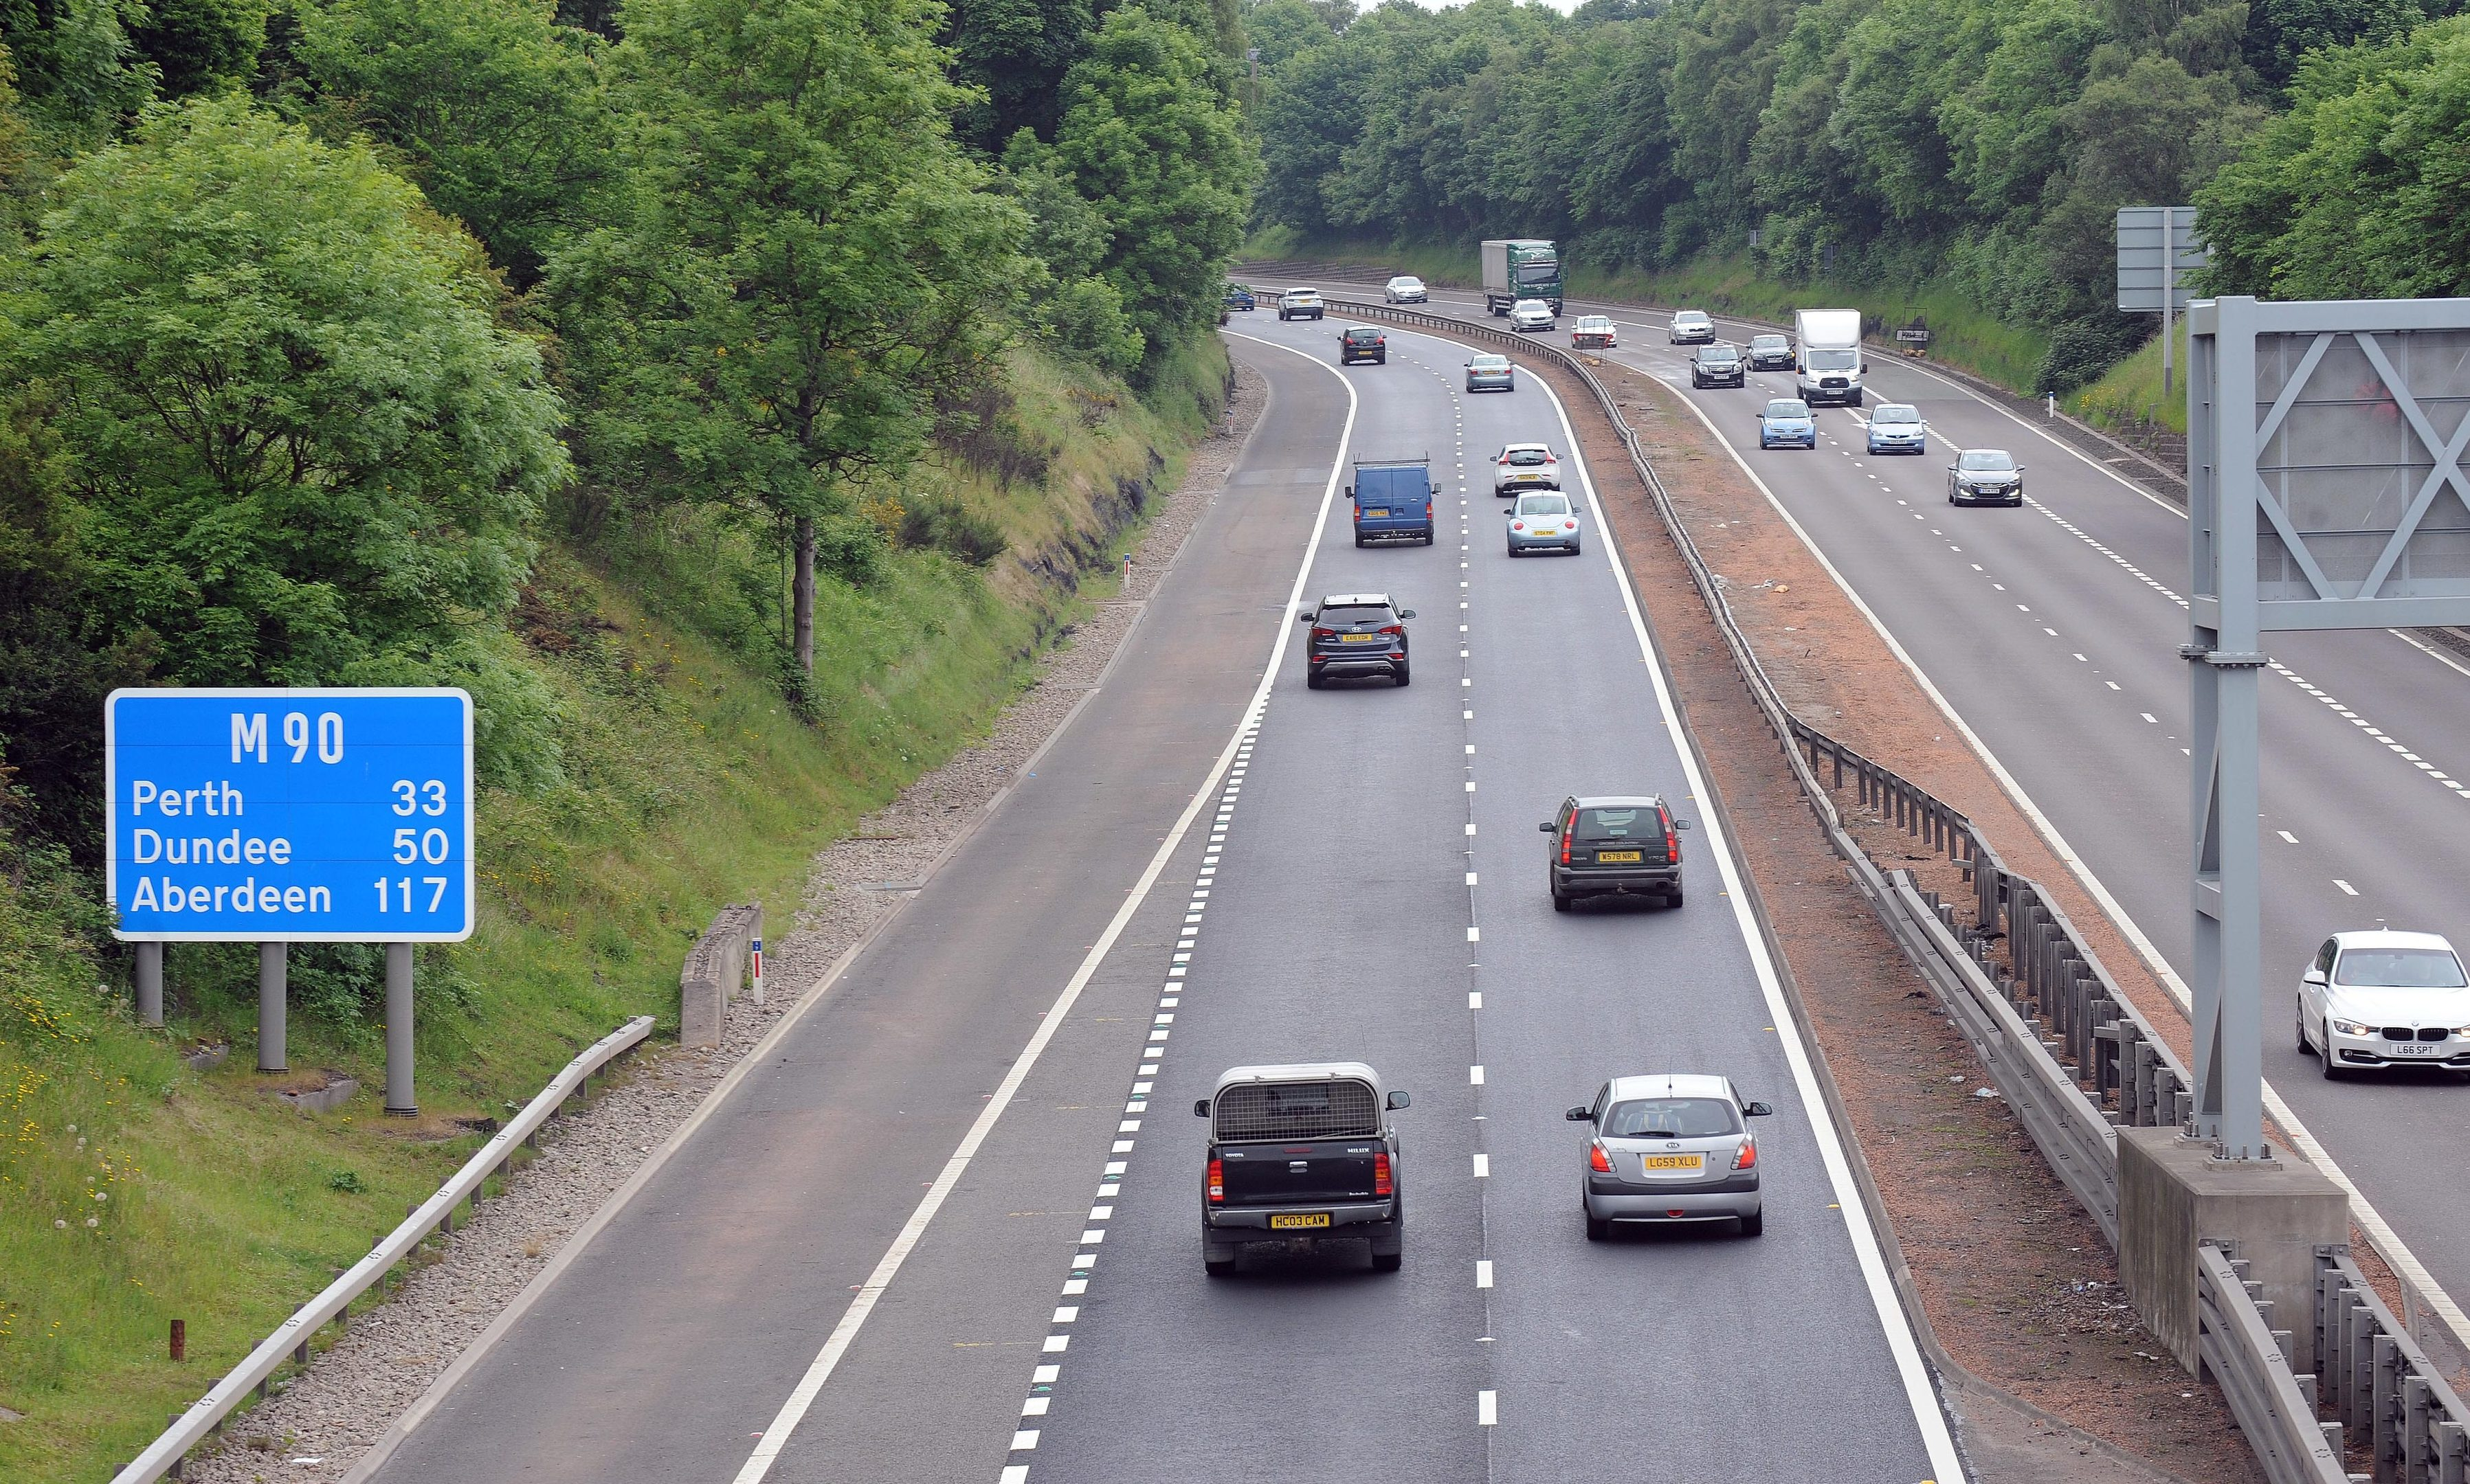 The M90 motorway.